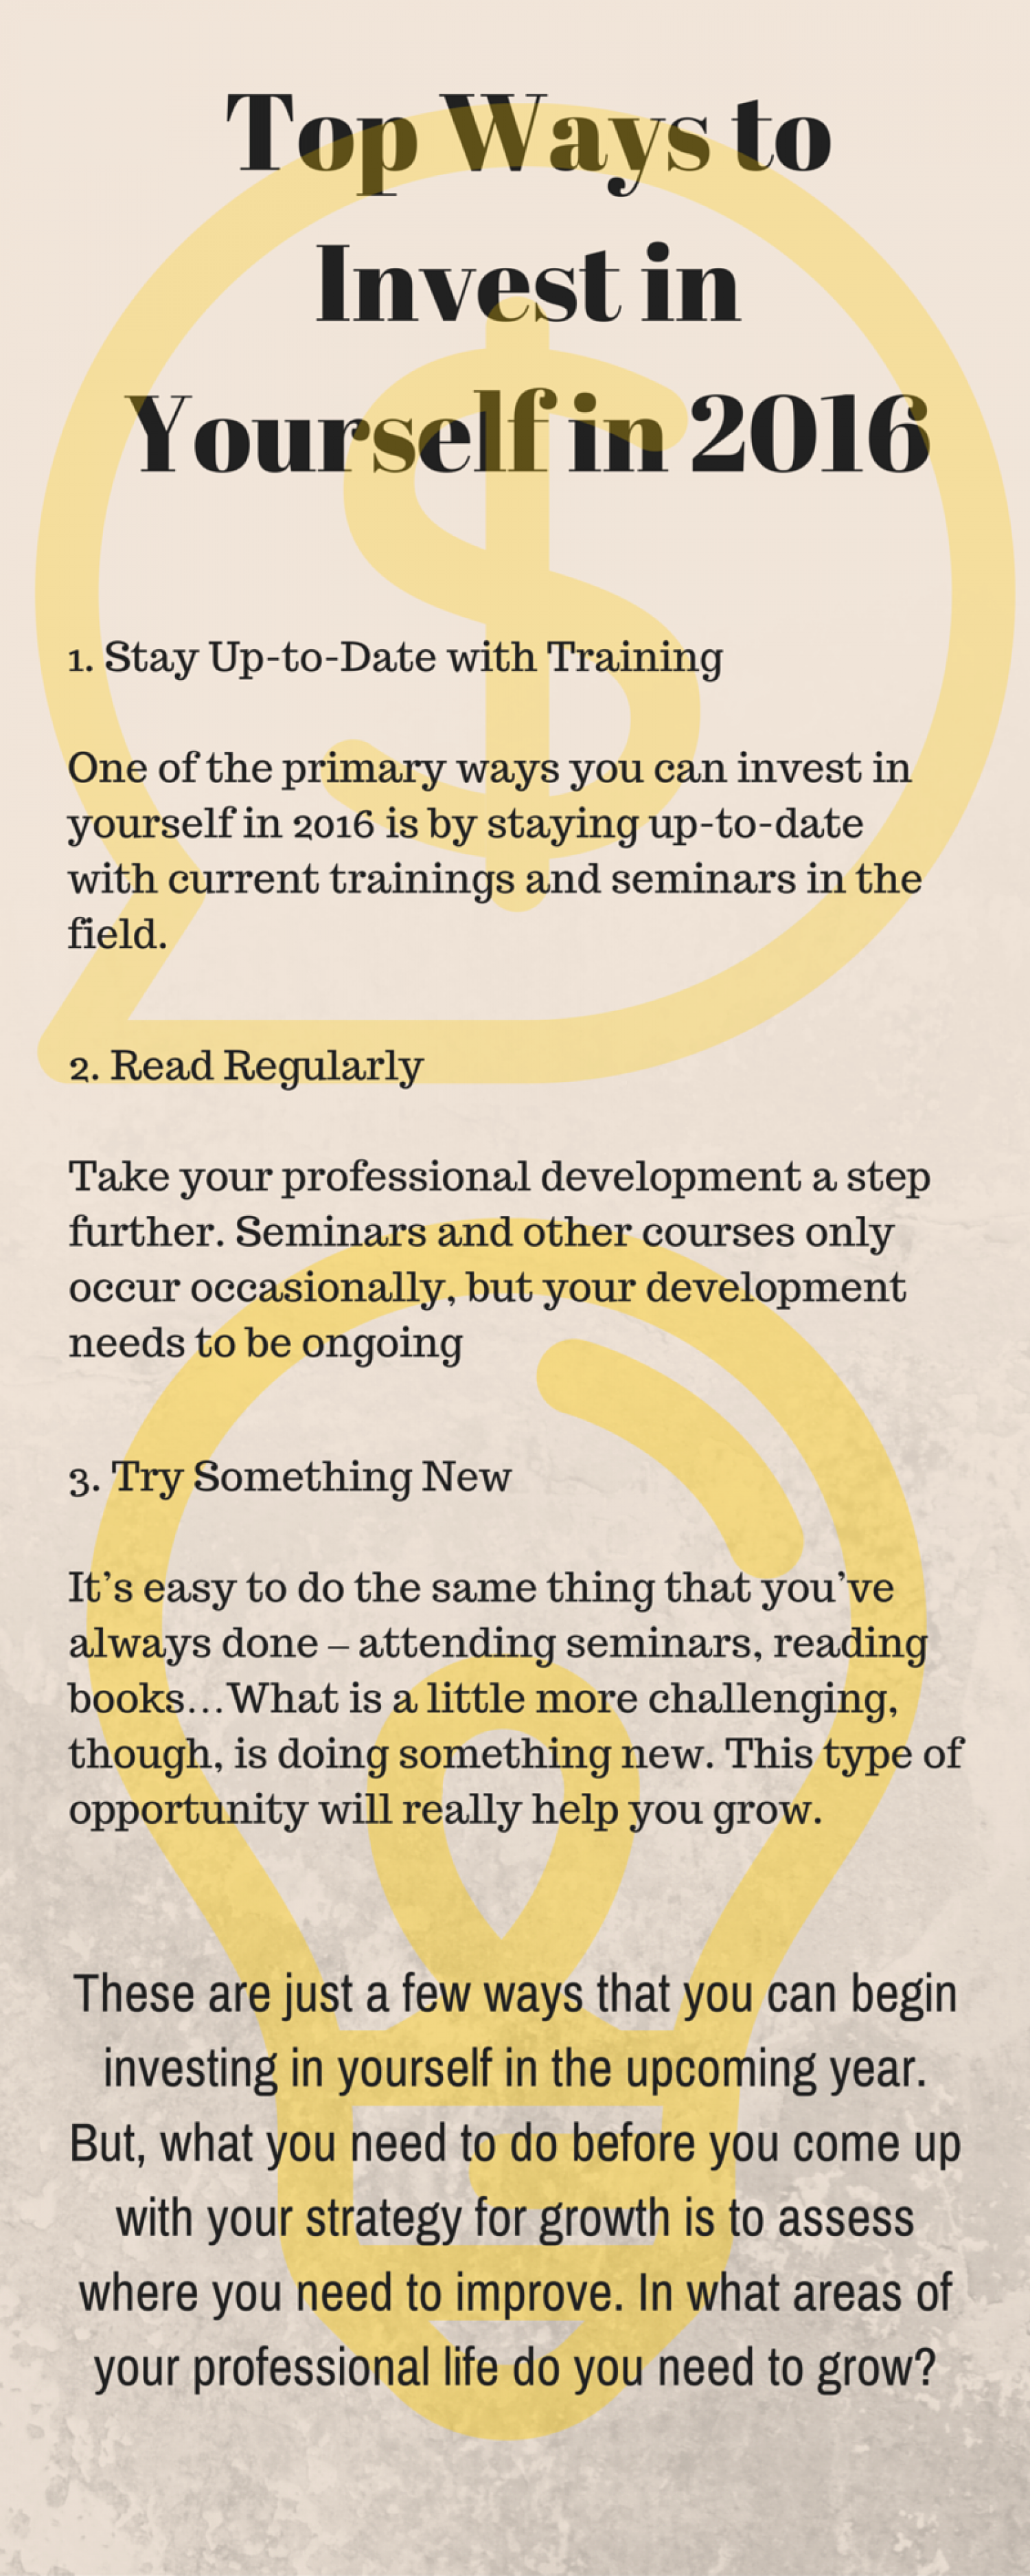 top ways to invest in yourself in ly top ways to invest in yourself in 2016 infographic